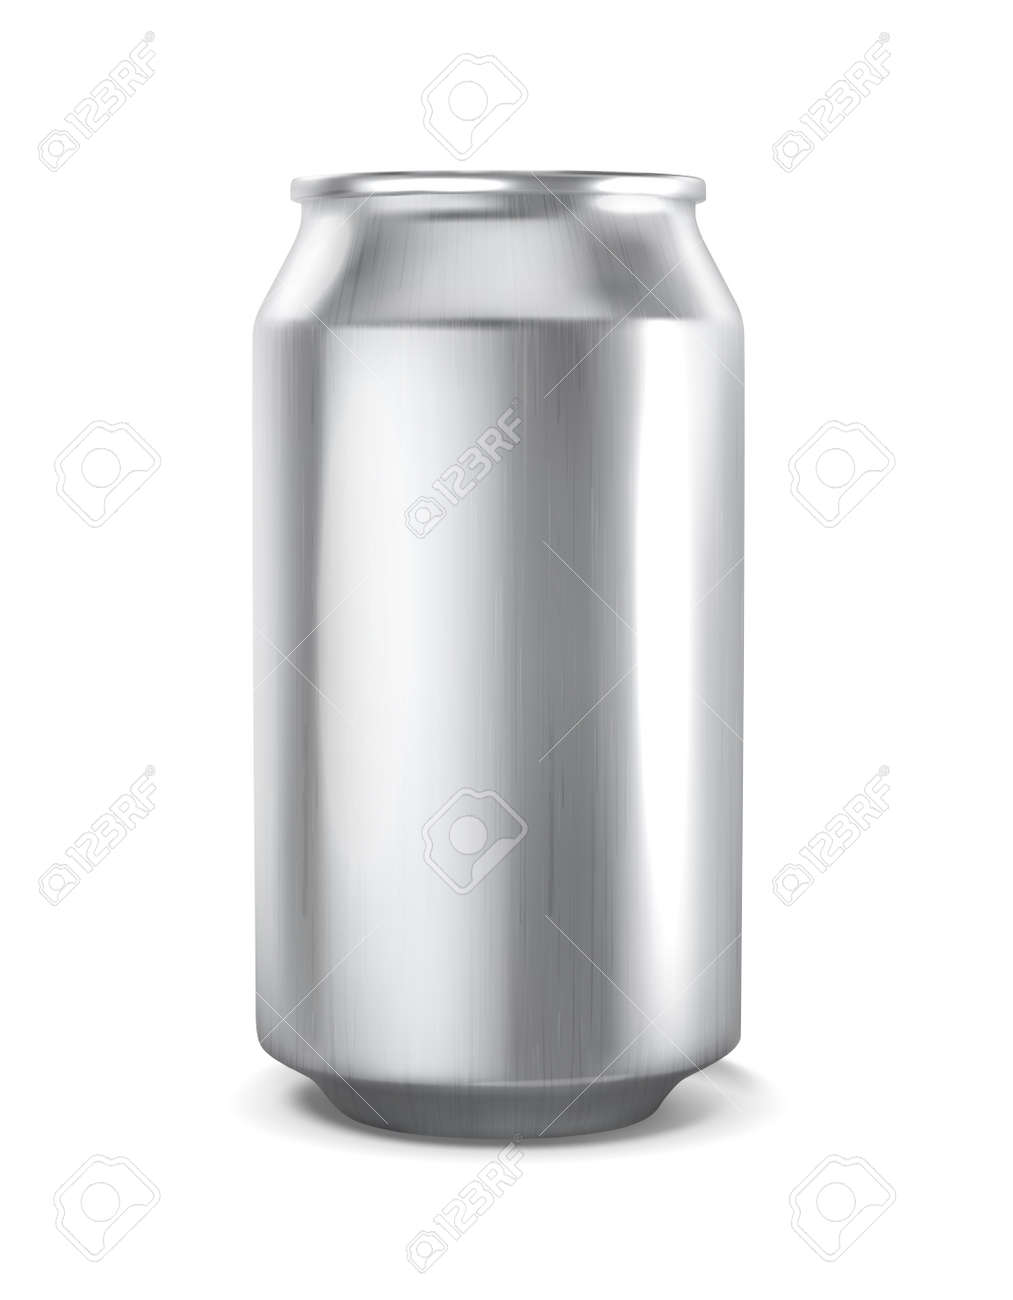 Tin can for a drink. Mockup for branding.Vector illustration on white background. - 157103839